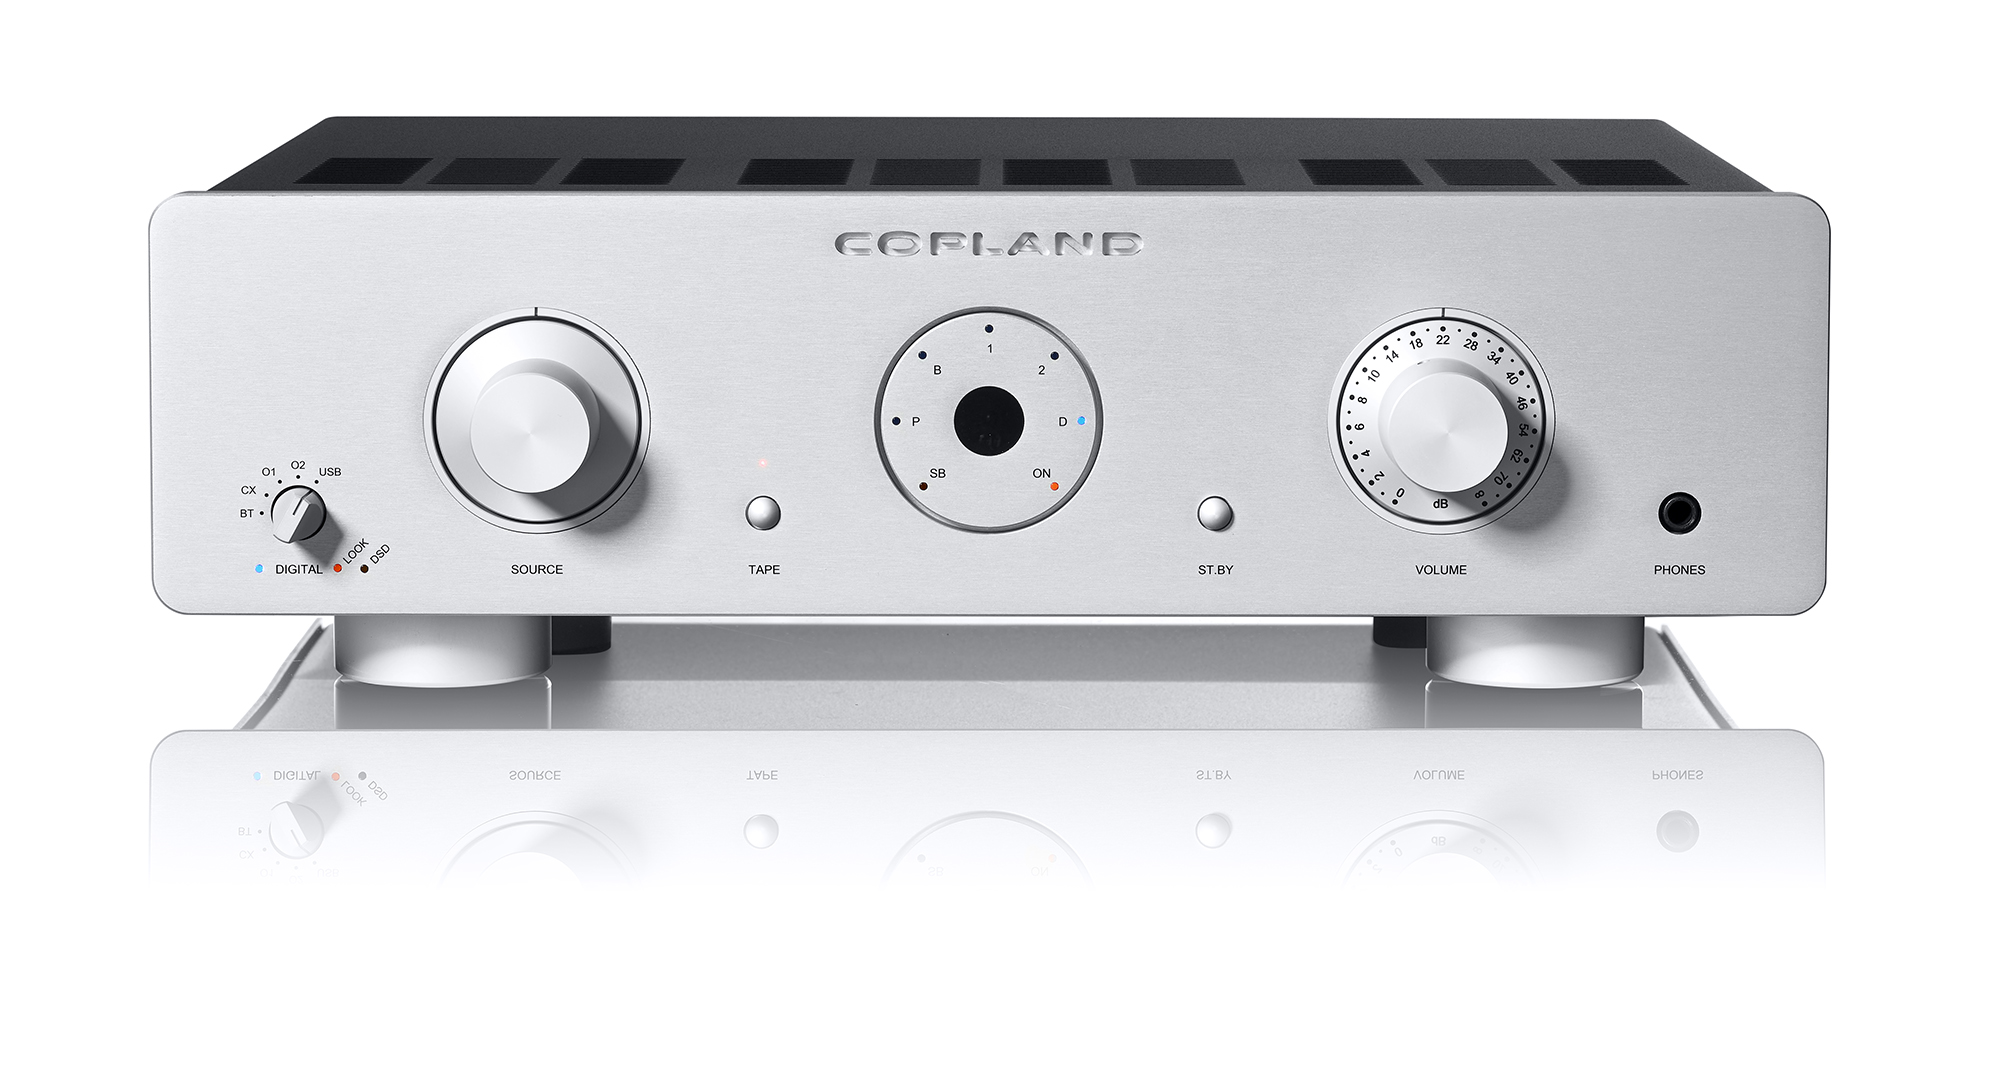 Copland CSA - 100 integrated amplifier review